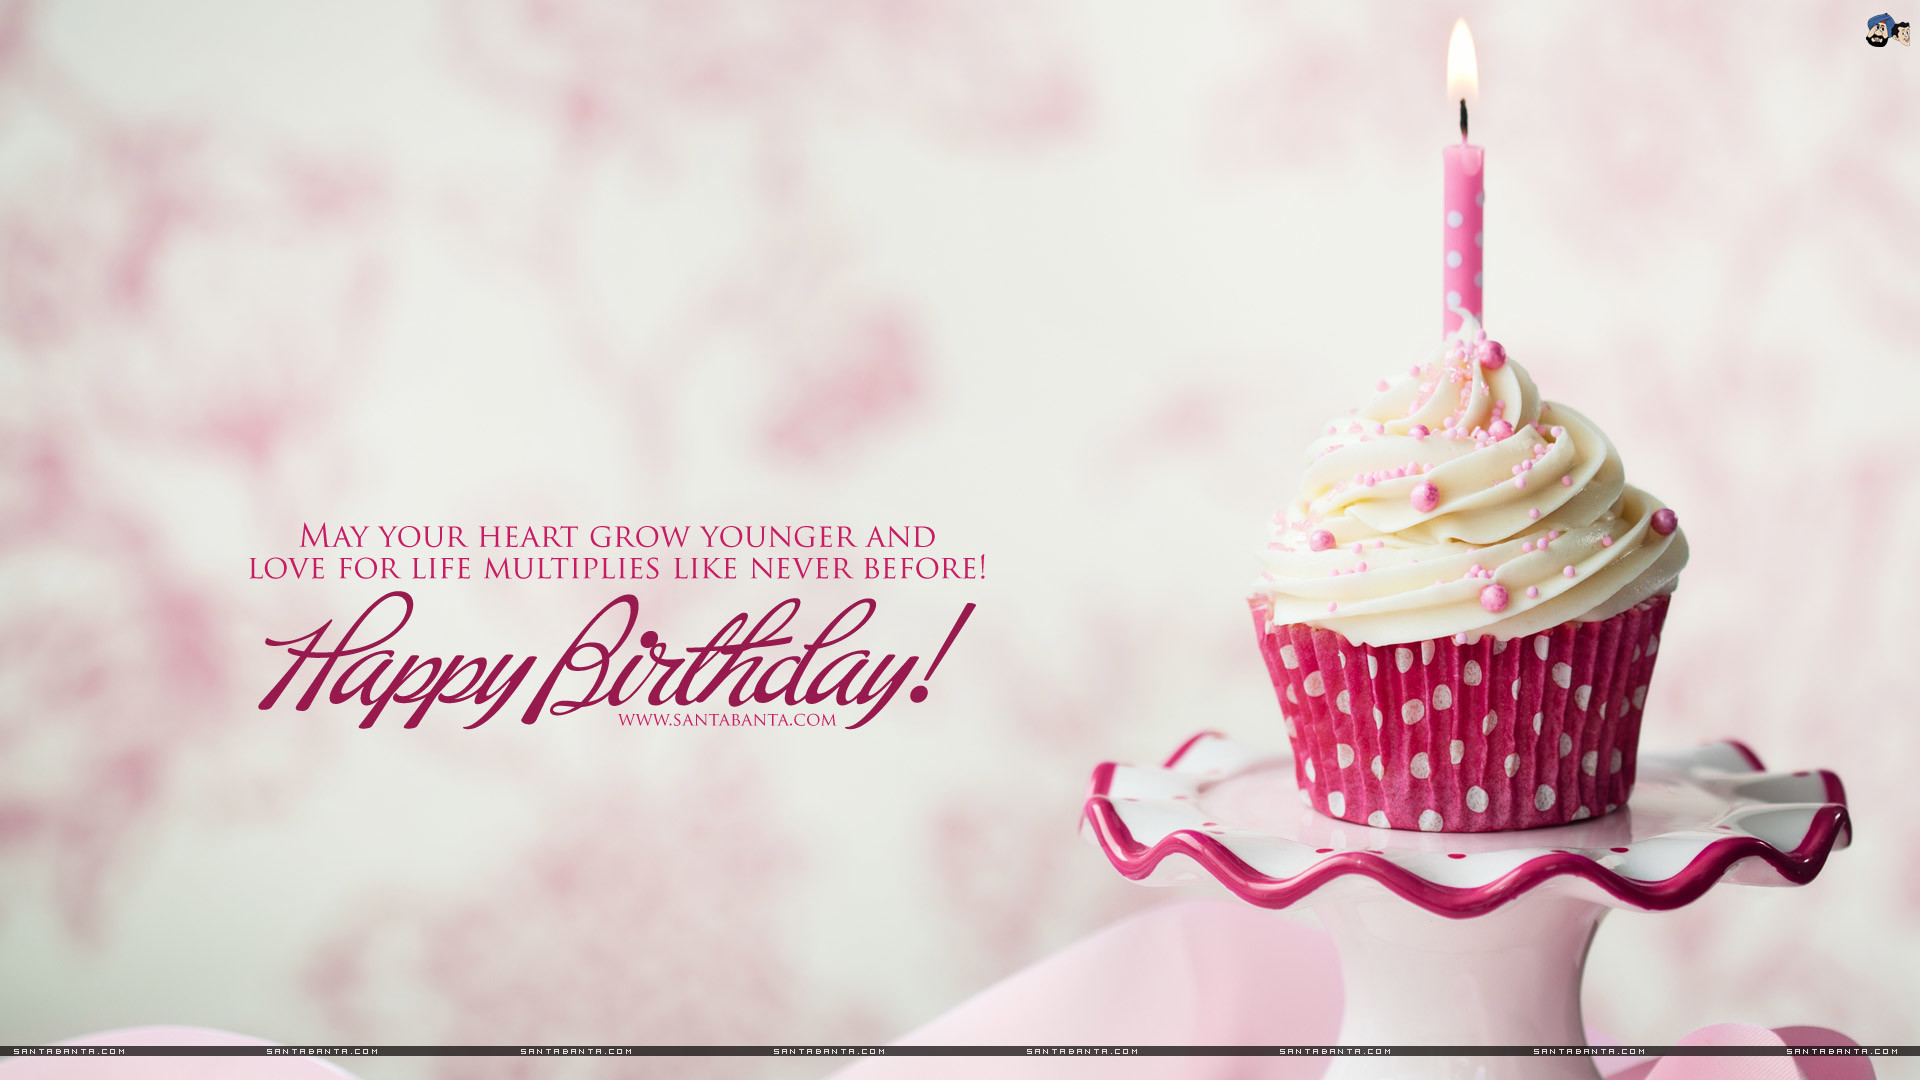 Happy Birthday Wallpapers (59+ images)